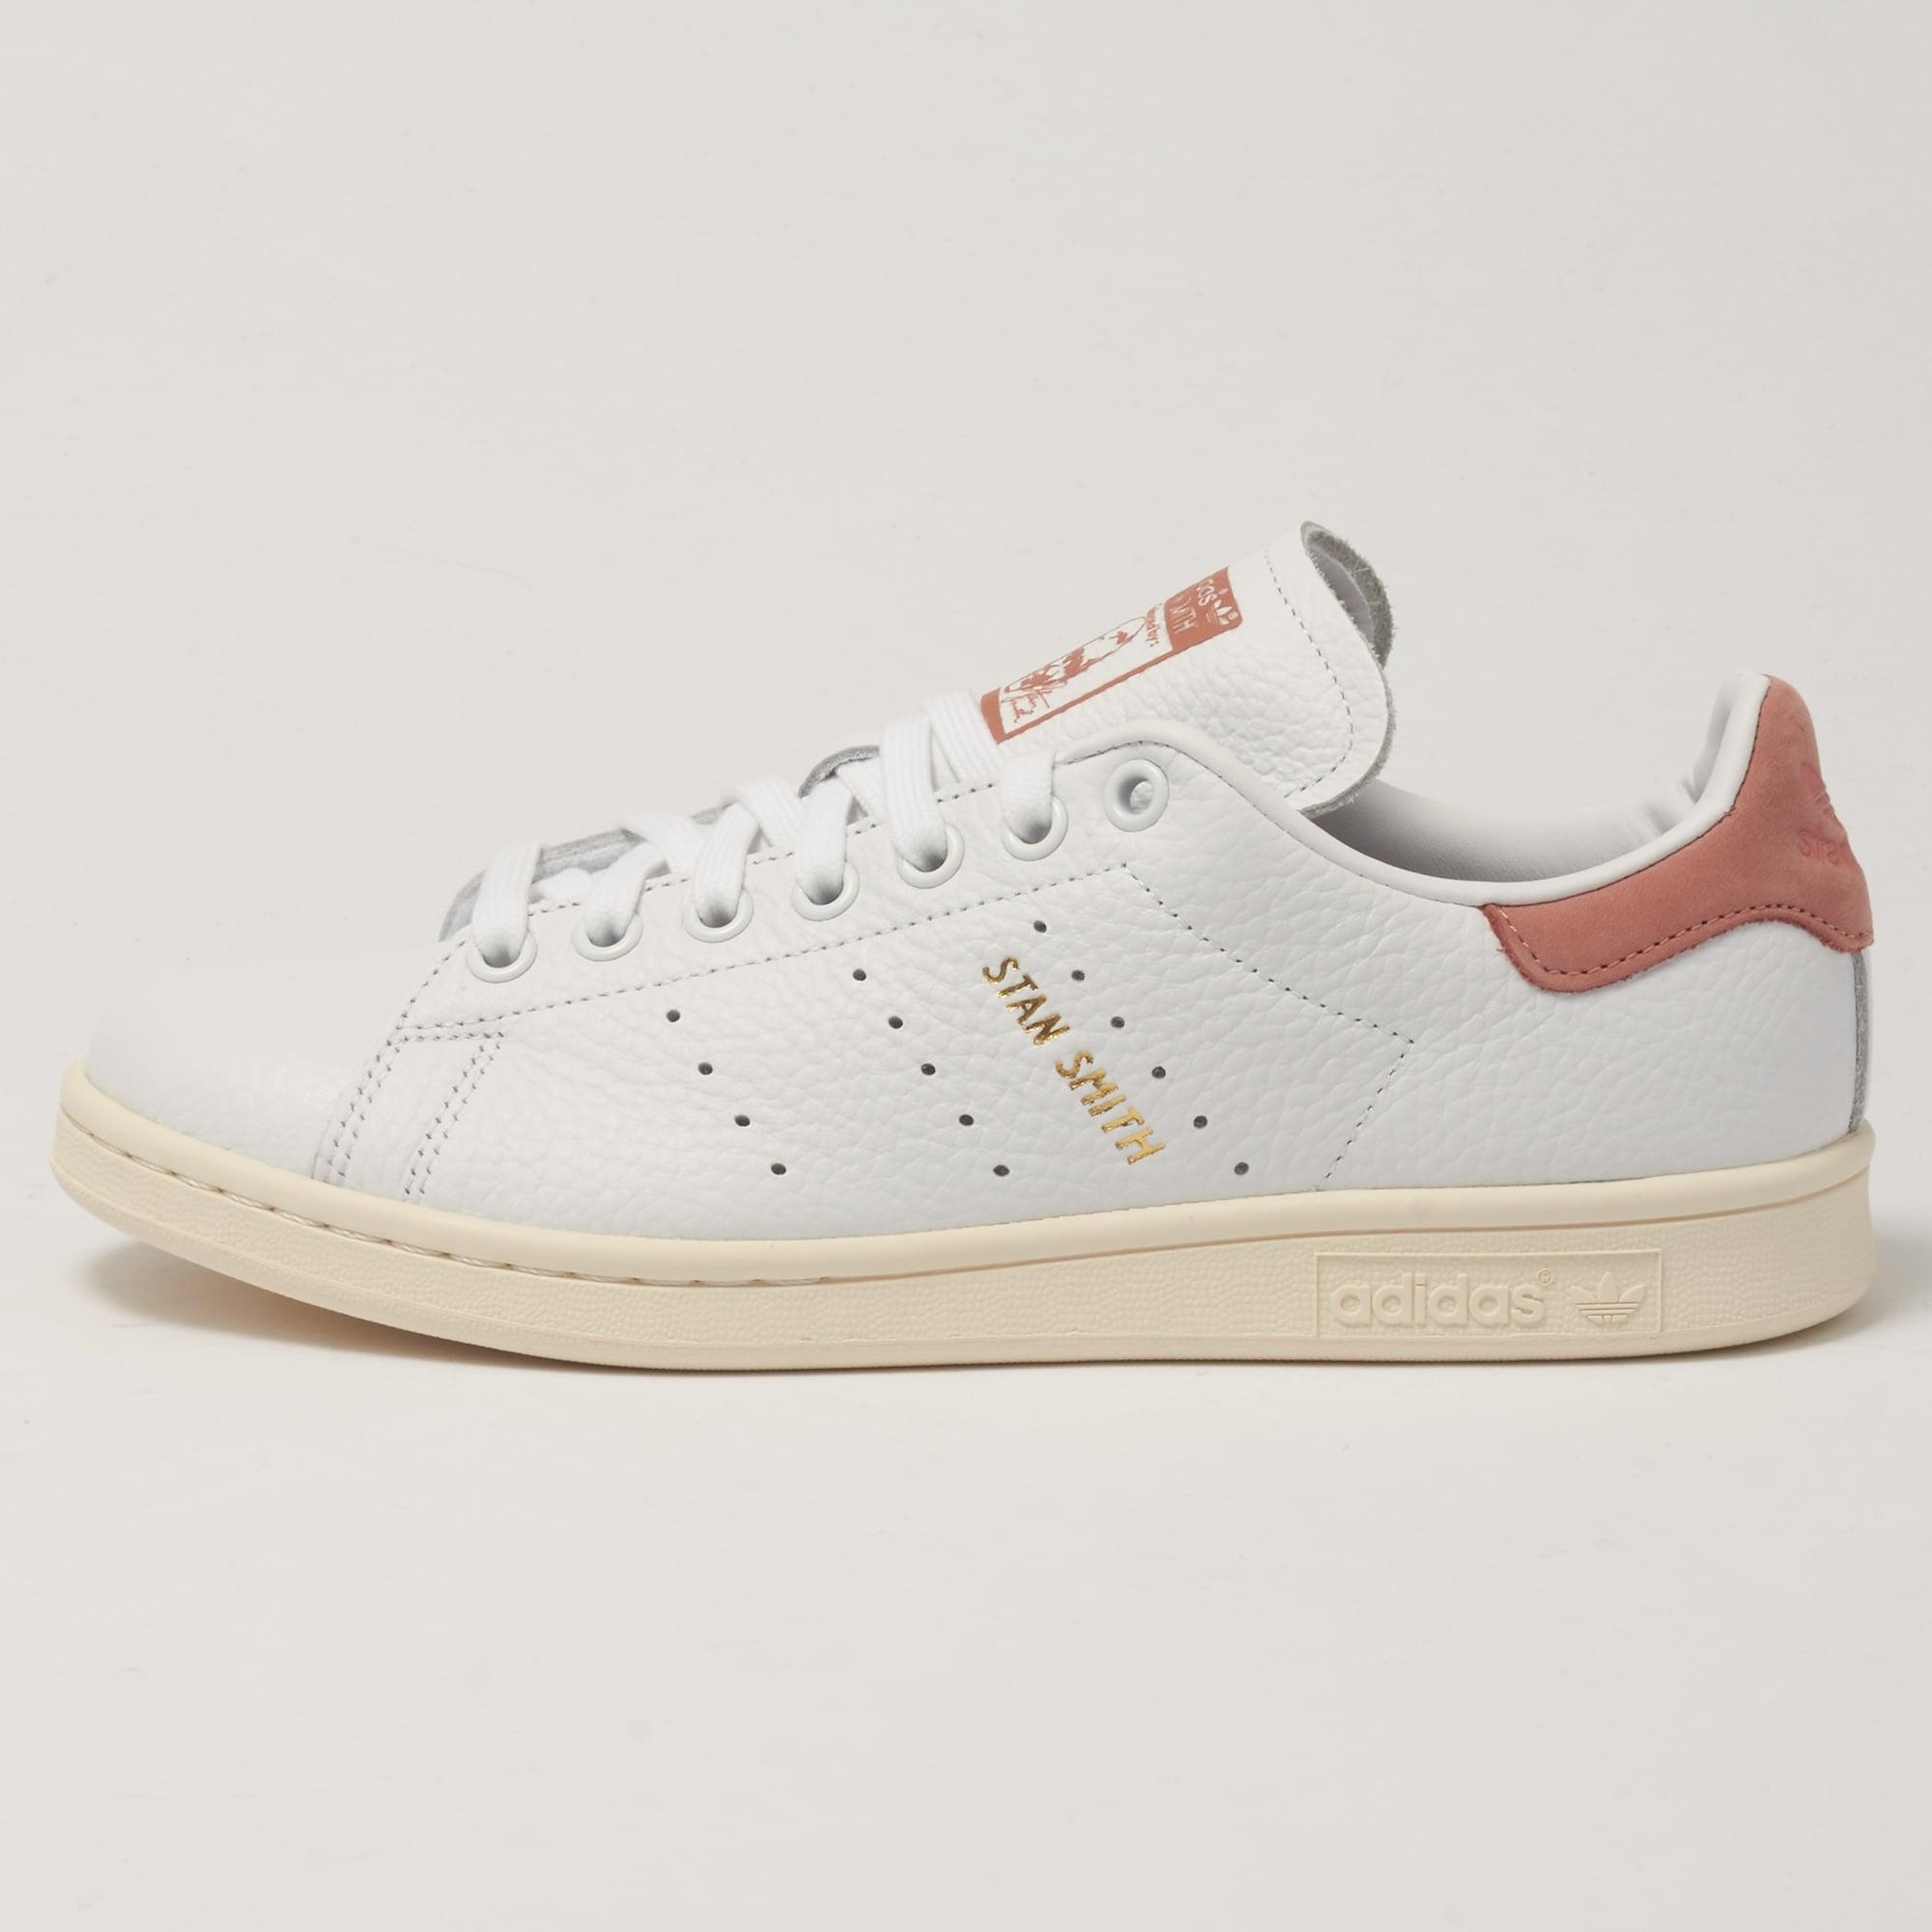 quality design 97a8c 8c94d ... purchase gallery. previously sold at stuarts london womens adidas stan  smith 17158 c9308